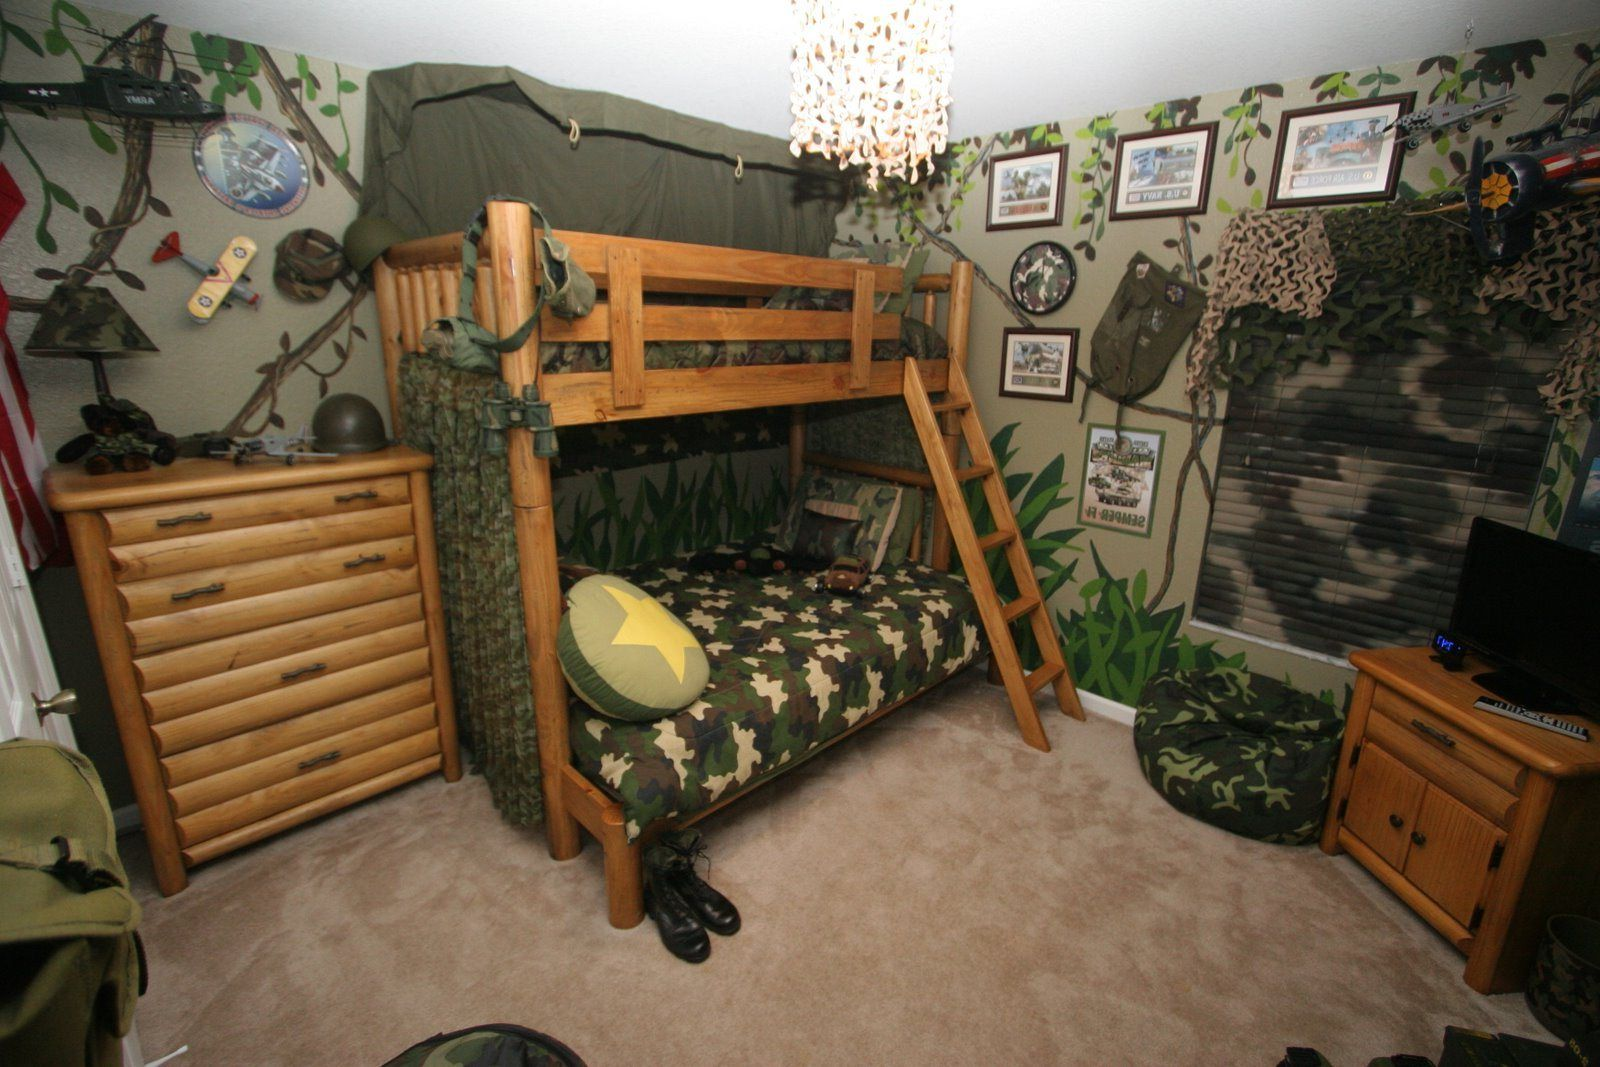 Bedroom Decor Kids Bed Frames Pirate Curtains Pictures